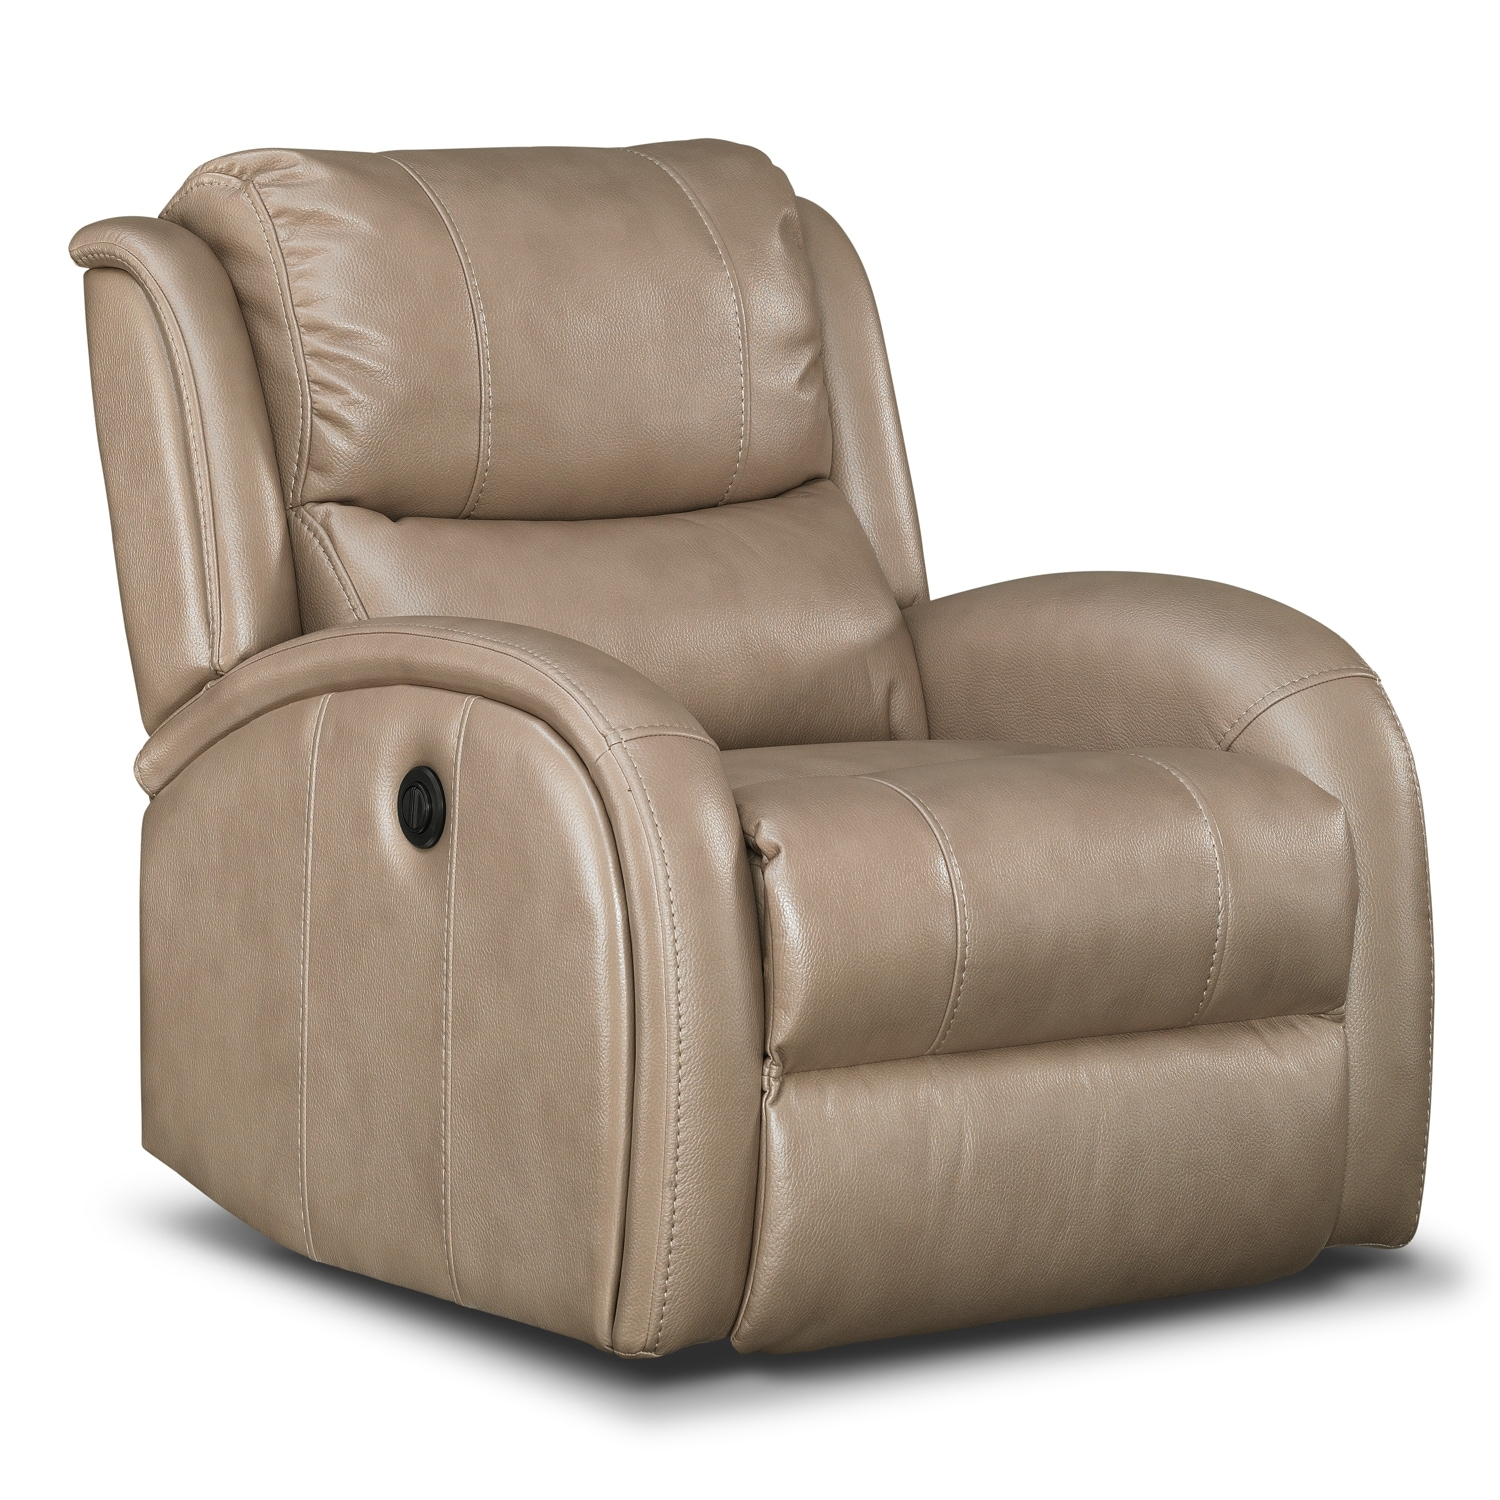 American Signature Furniture Corsica Leather Power Recliner : 289360 from americansignaturefurniture.com size 1500 x 1500 jpeg 1182kB